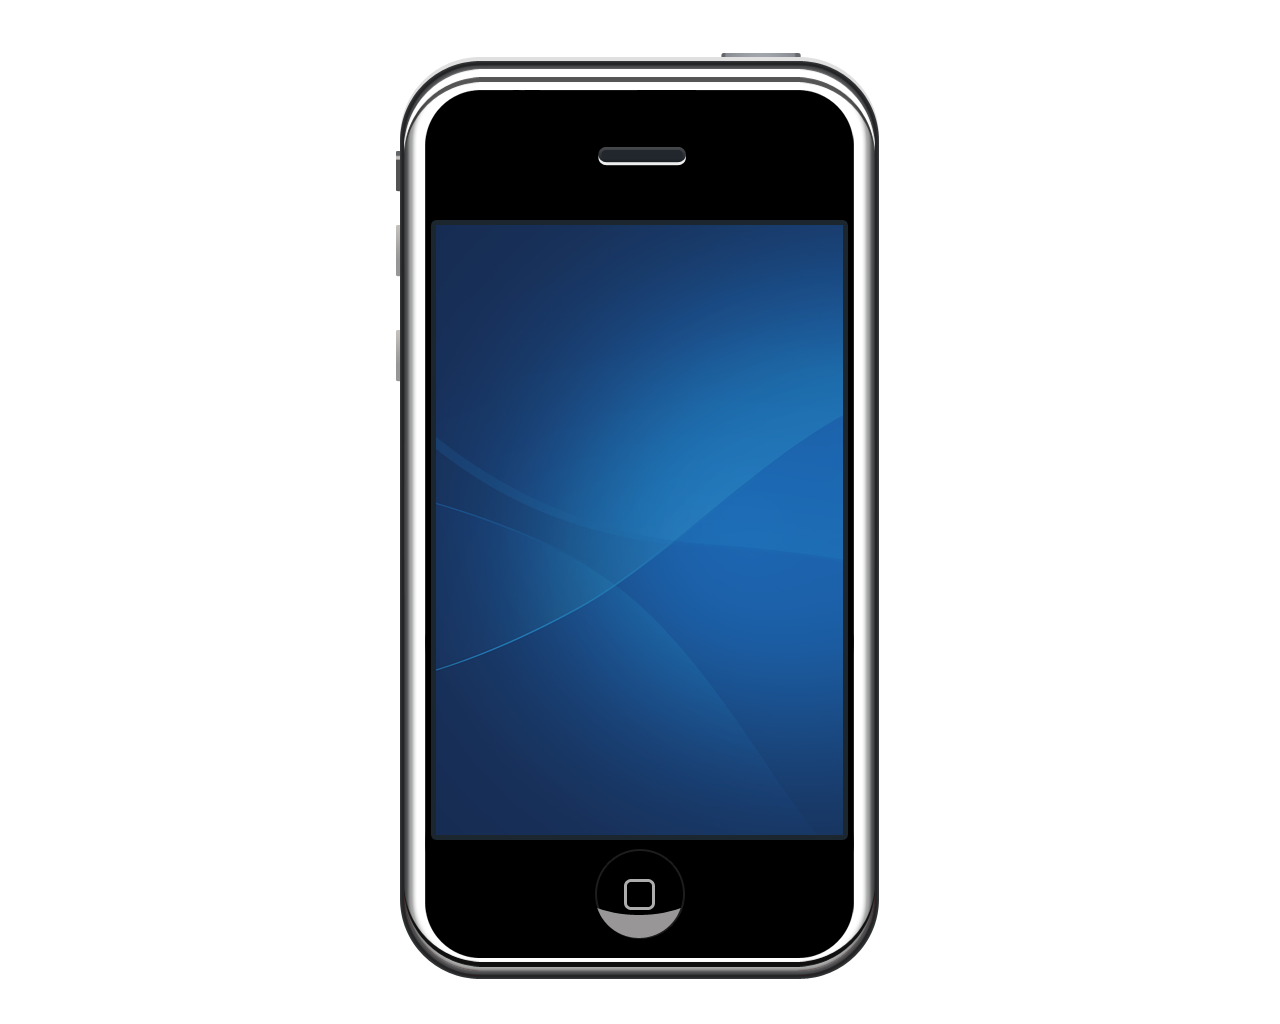 apple iphone png transparent images png only #11200